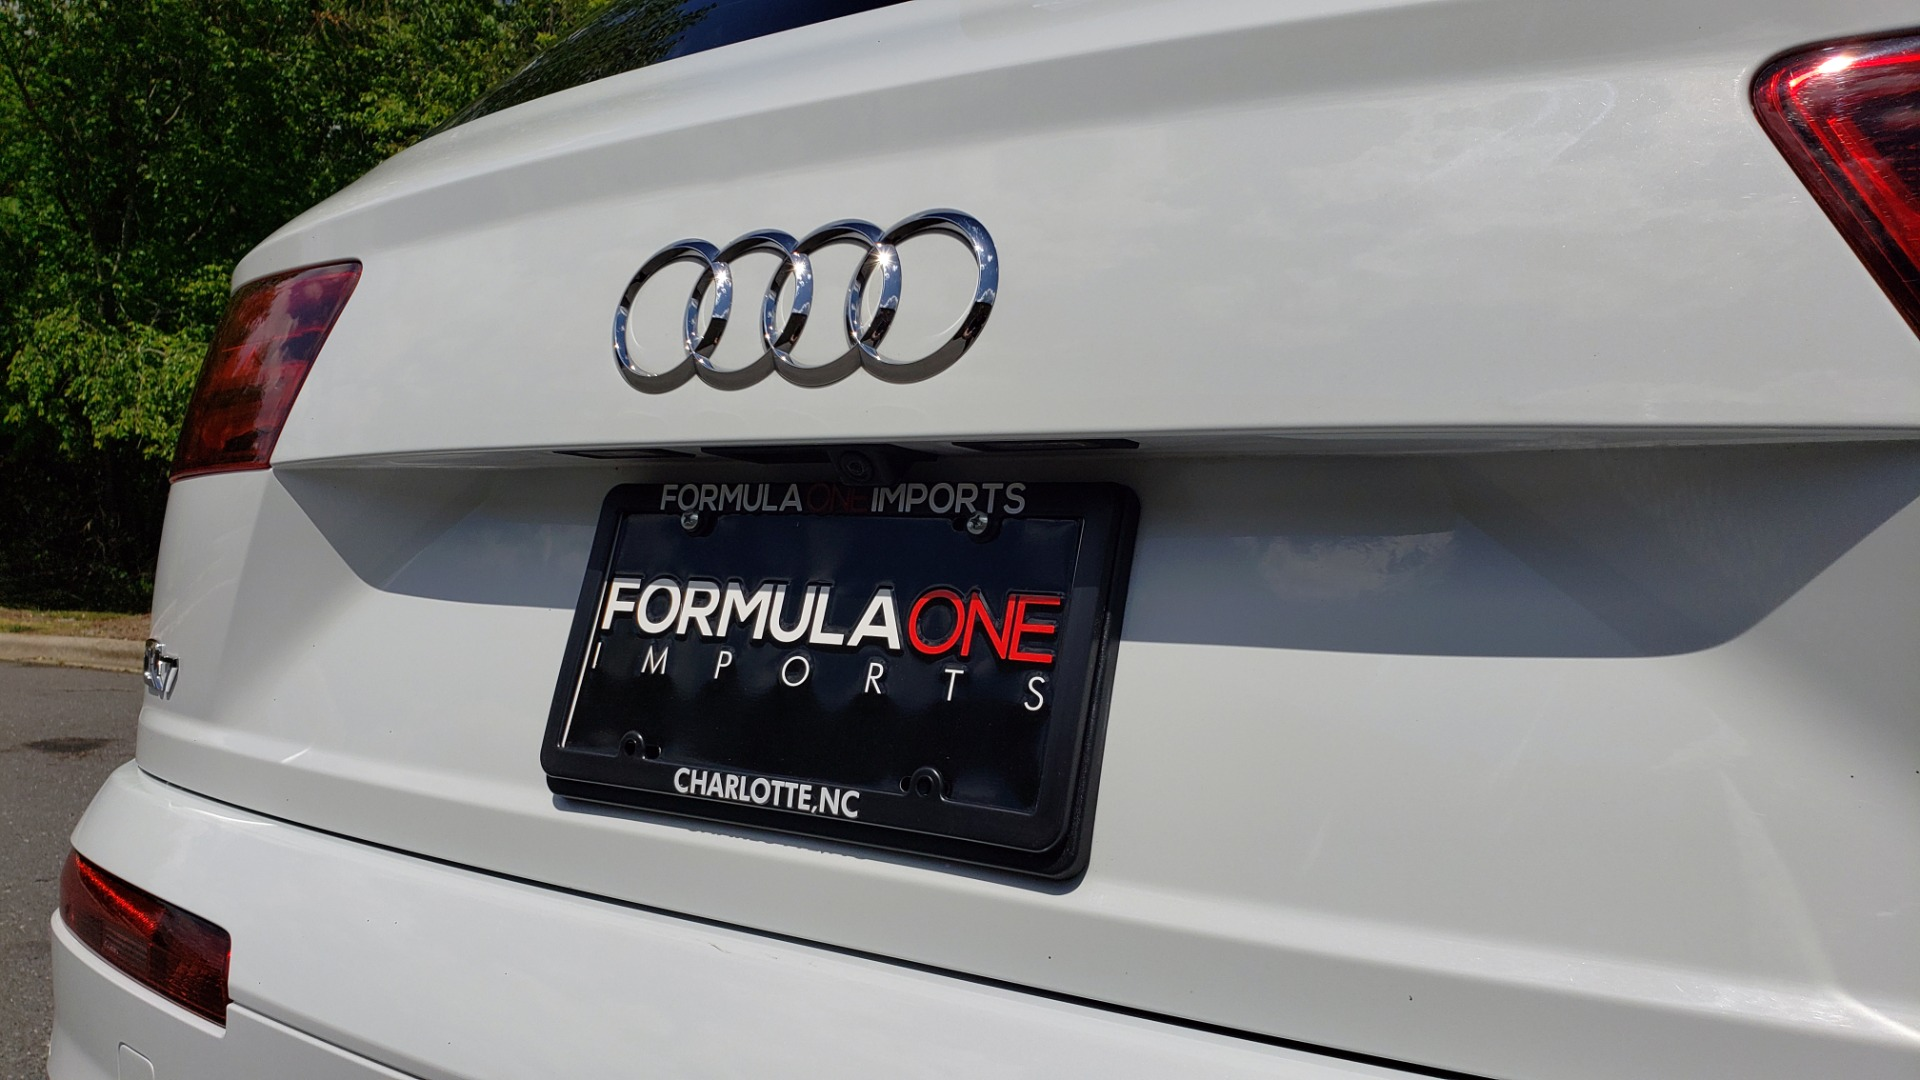 Used 2017 Audi Q7 PREMIUM PLUS / VISION PKG / NAV / PANO-ROOF / 3-ROW / REARVIEW for sale Sold at Formula Imports in Charlotte NC 28227 33